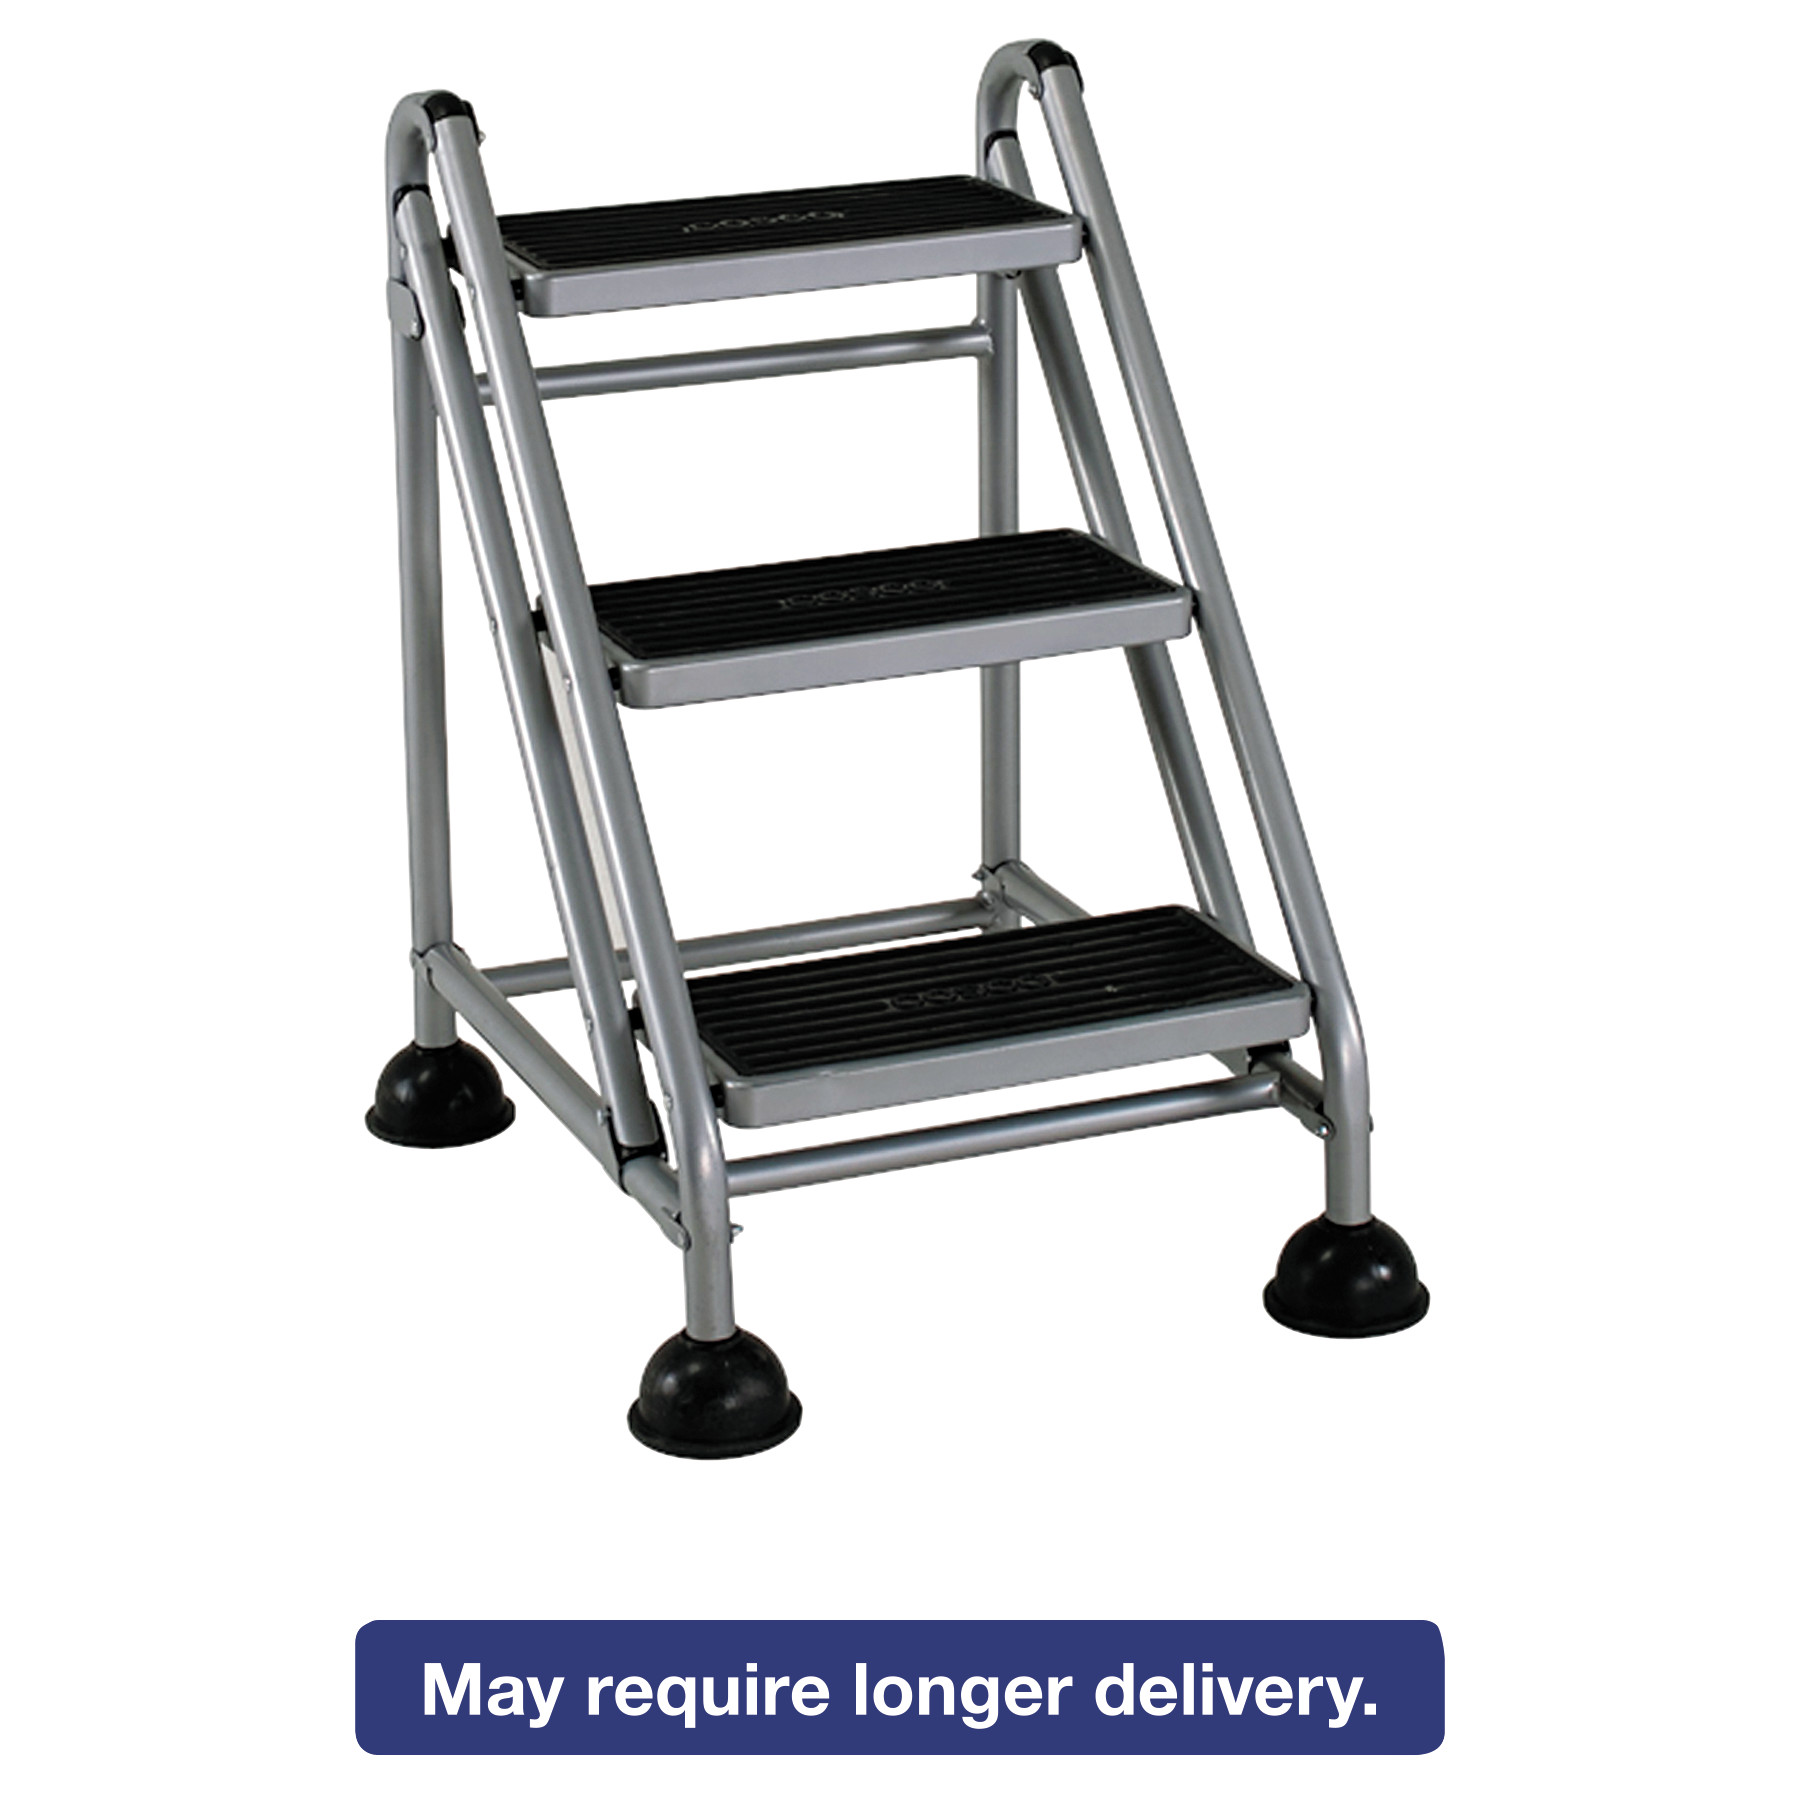 Cosco Rolling Commercial Step Stool 3-Step 26 3/5 Spread  sc 1 st  Walmart & Cosco Rolling Commercial Step Stool 3-Step 26 3/5 Spread ... islam-shia.org